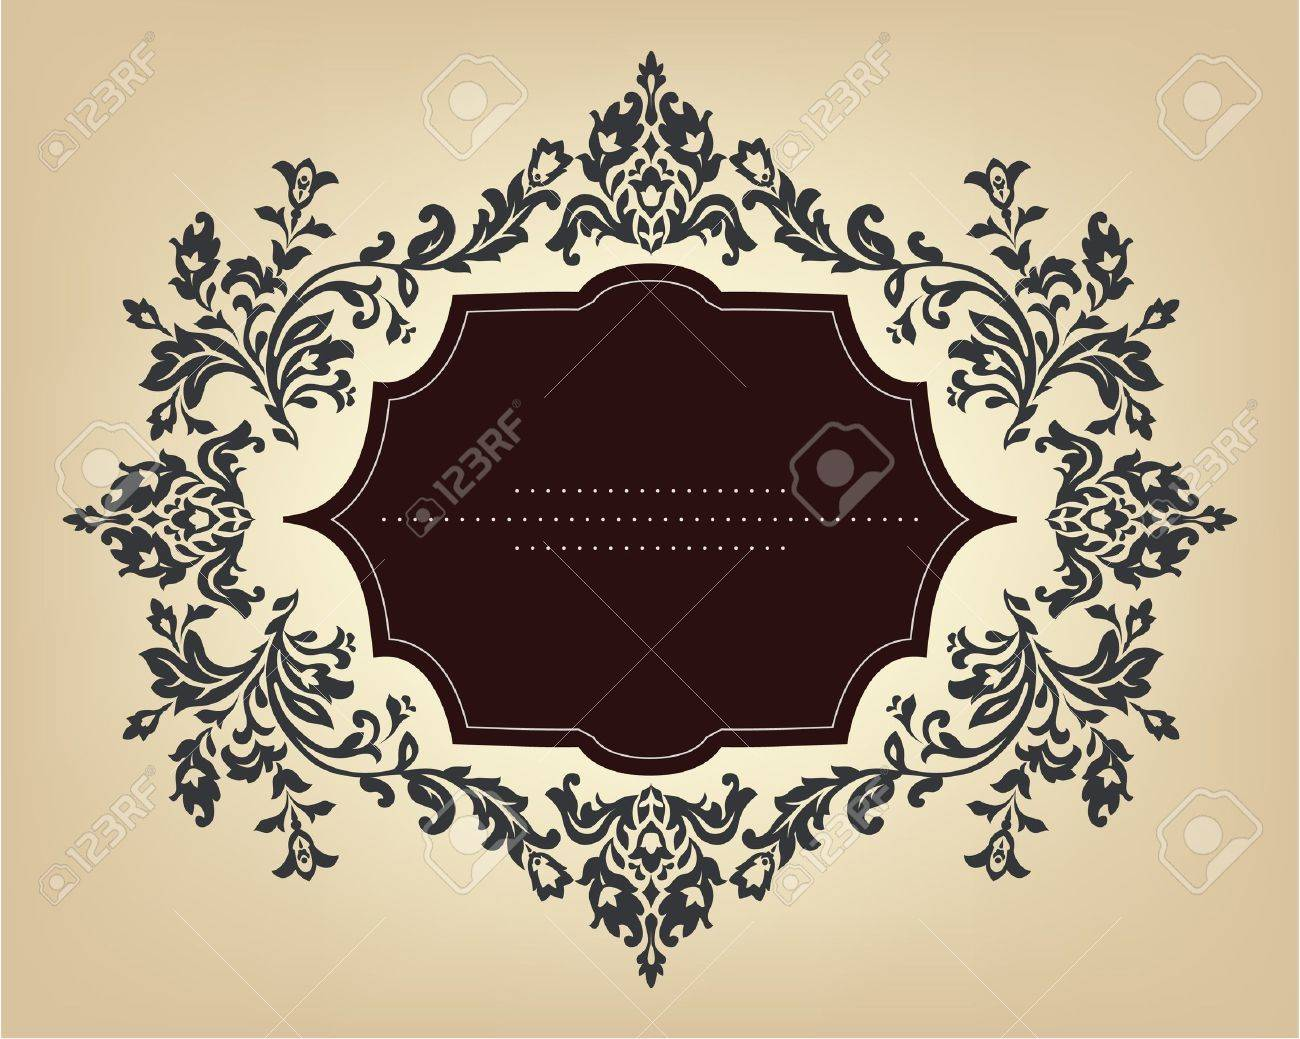 Vintage frame with floral ornament Stock Vector - 12324532